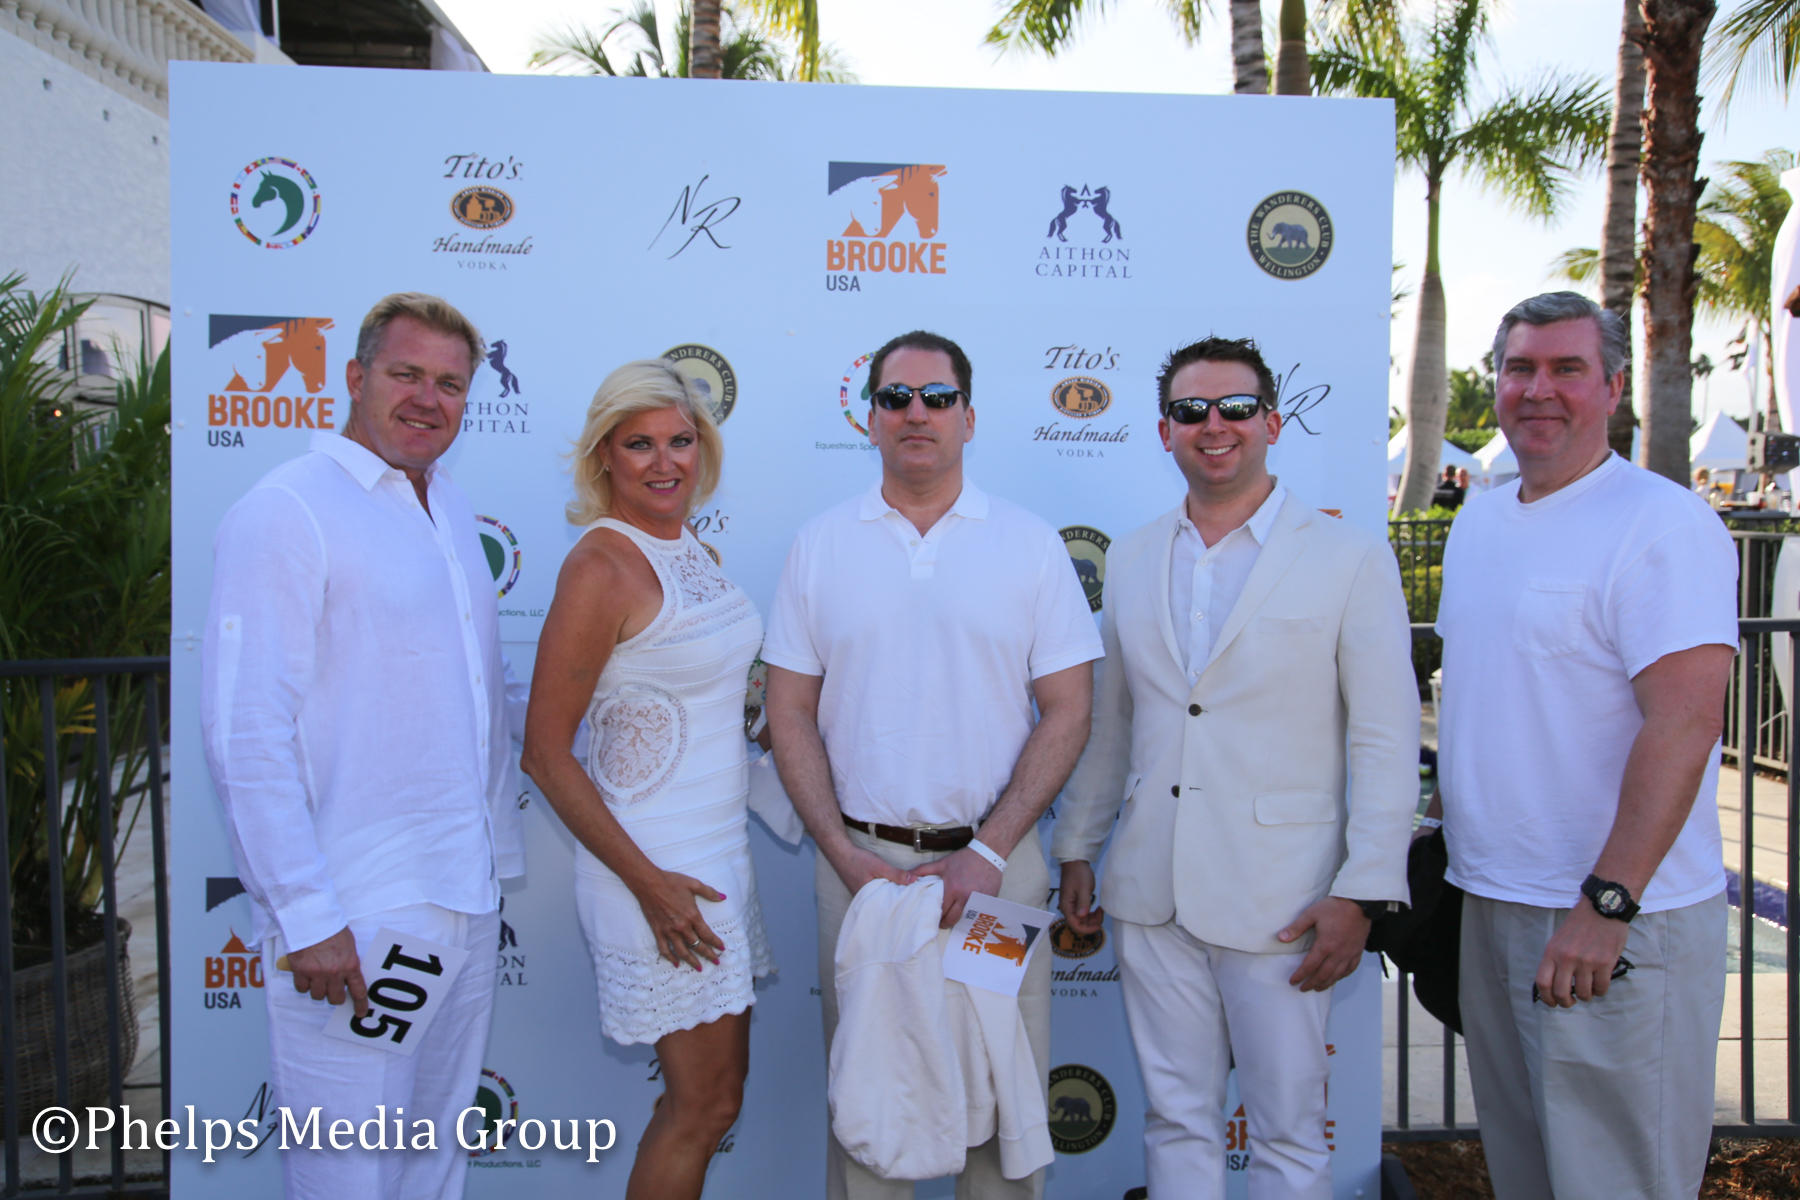 Aithon Capital; Nic Roldan's 2nd Annual Sunset Polo & White Party, FL, by Phelps Media.jpg